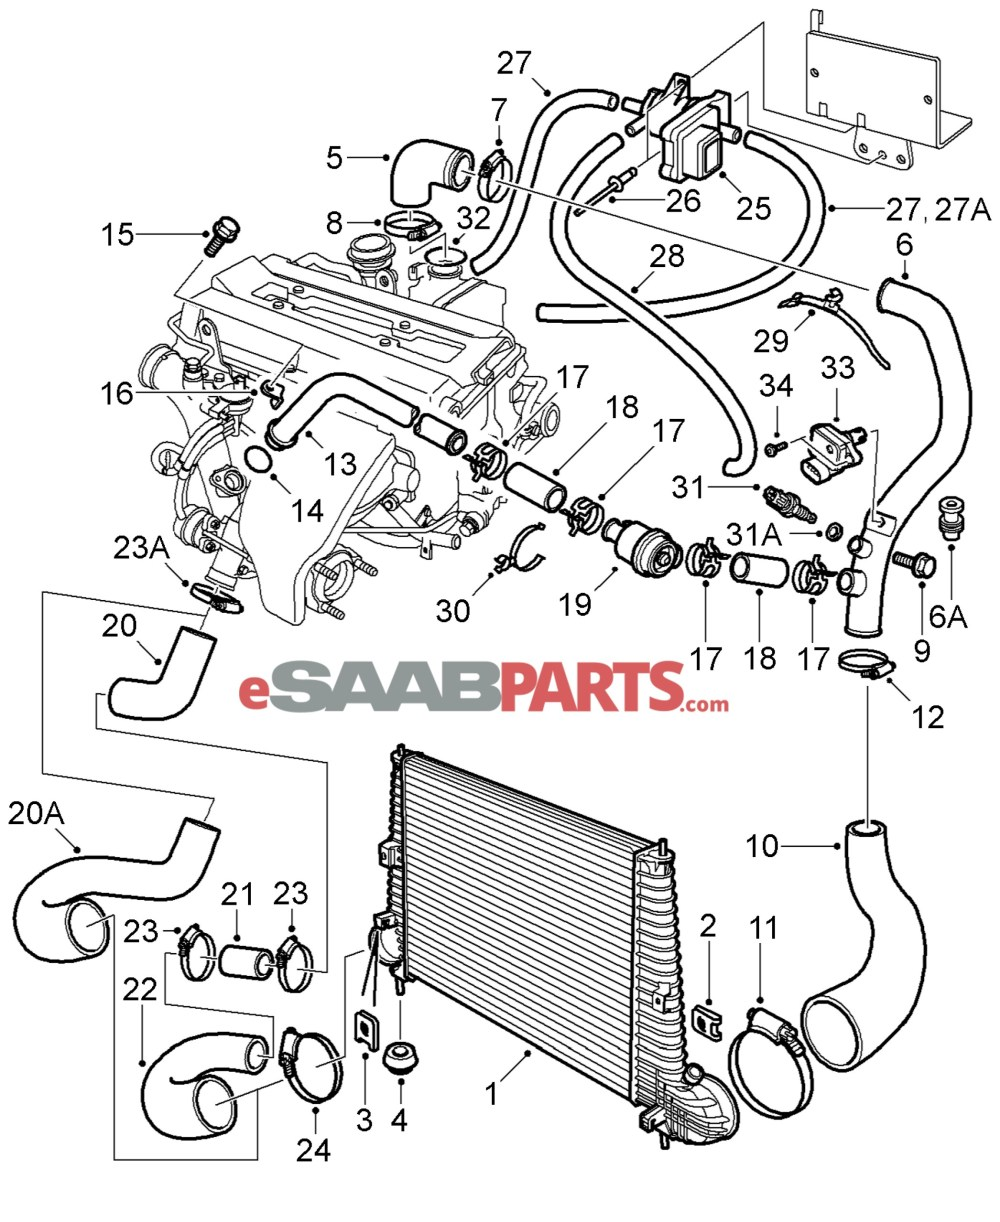 medium resolution of 2003 mazda mpv engine diagram wiring diagram2005 mazda mpv wiring diagram wiring diagram2004 mazda mpv wiring